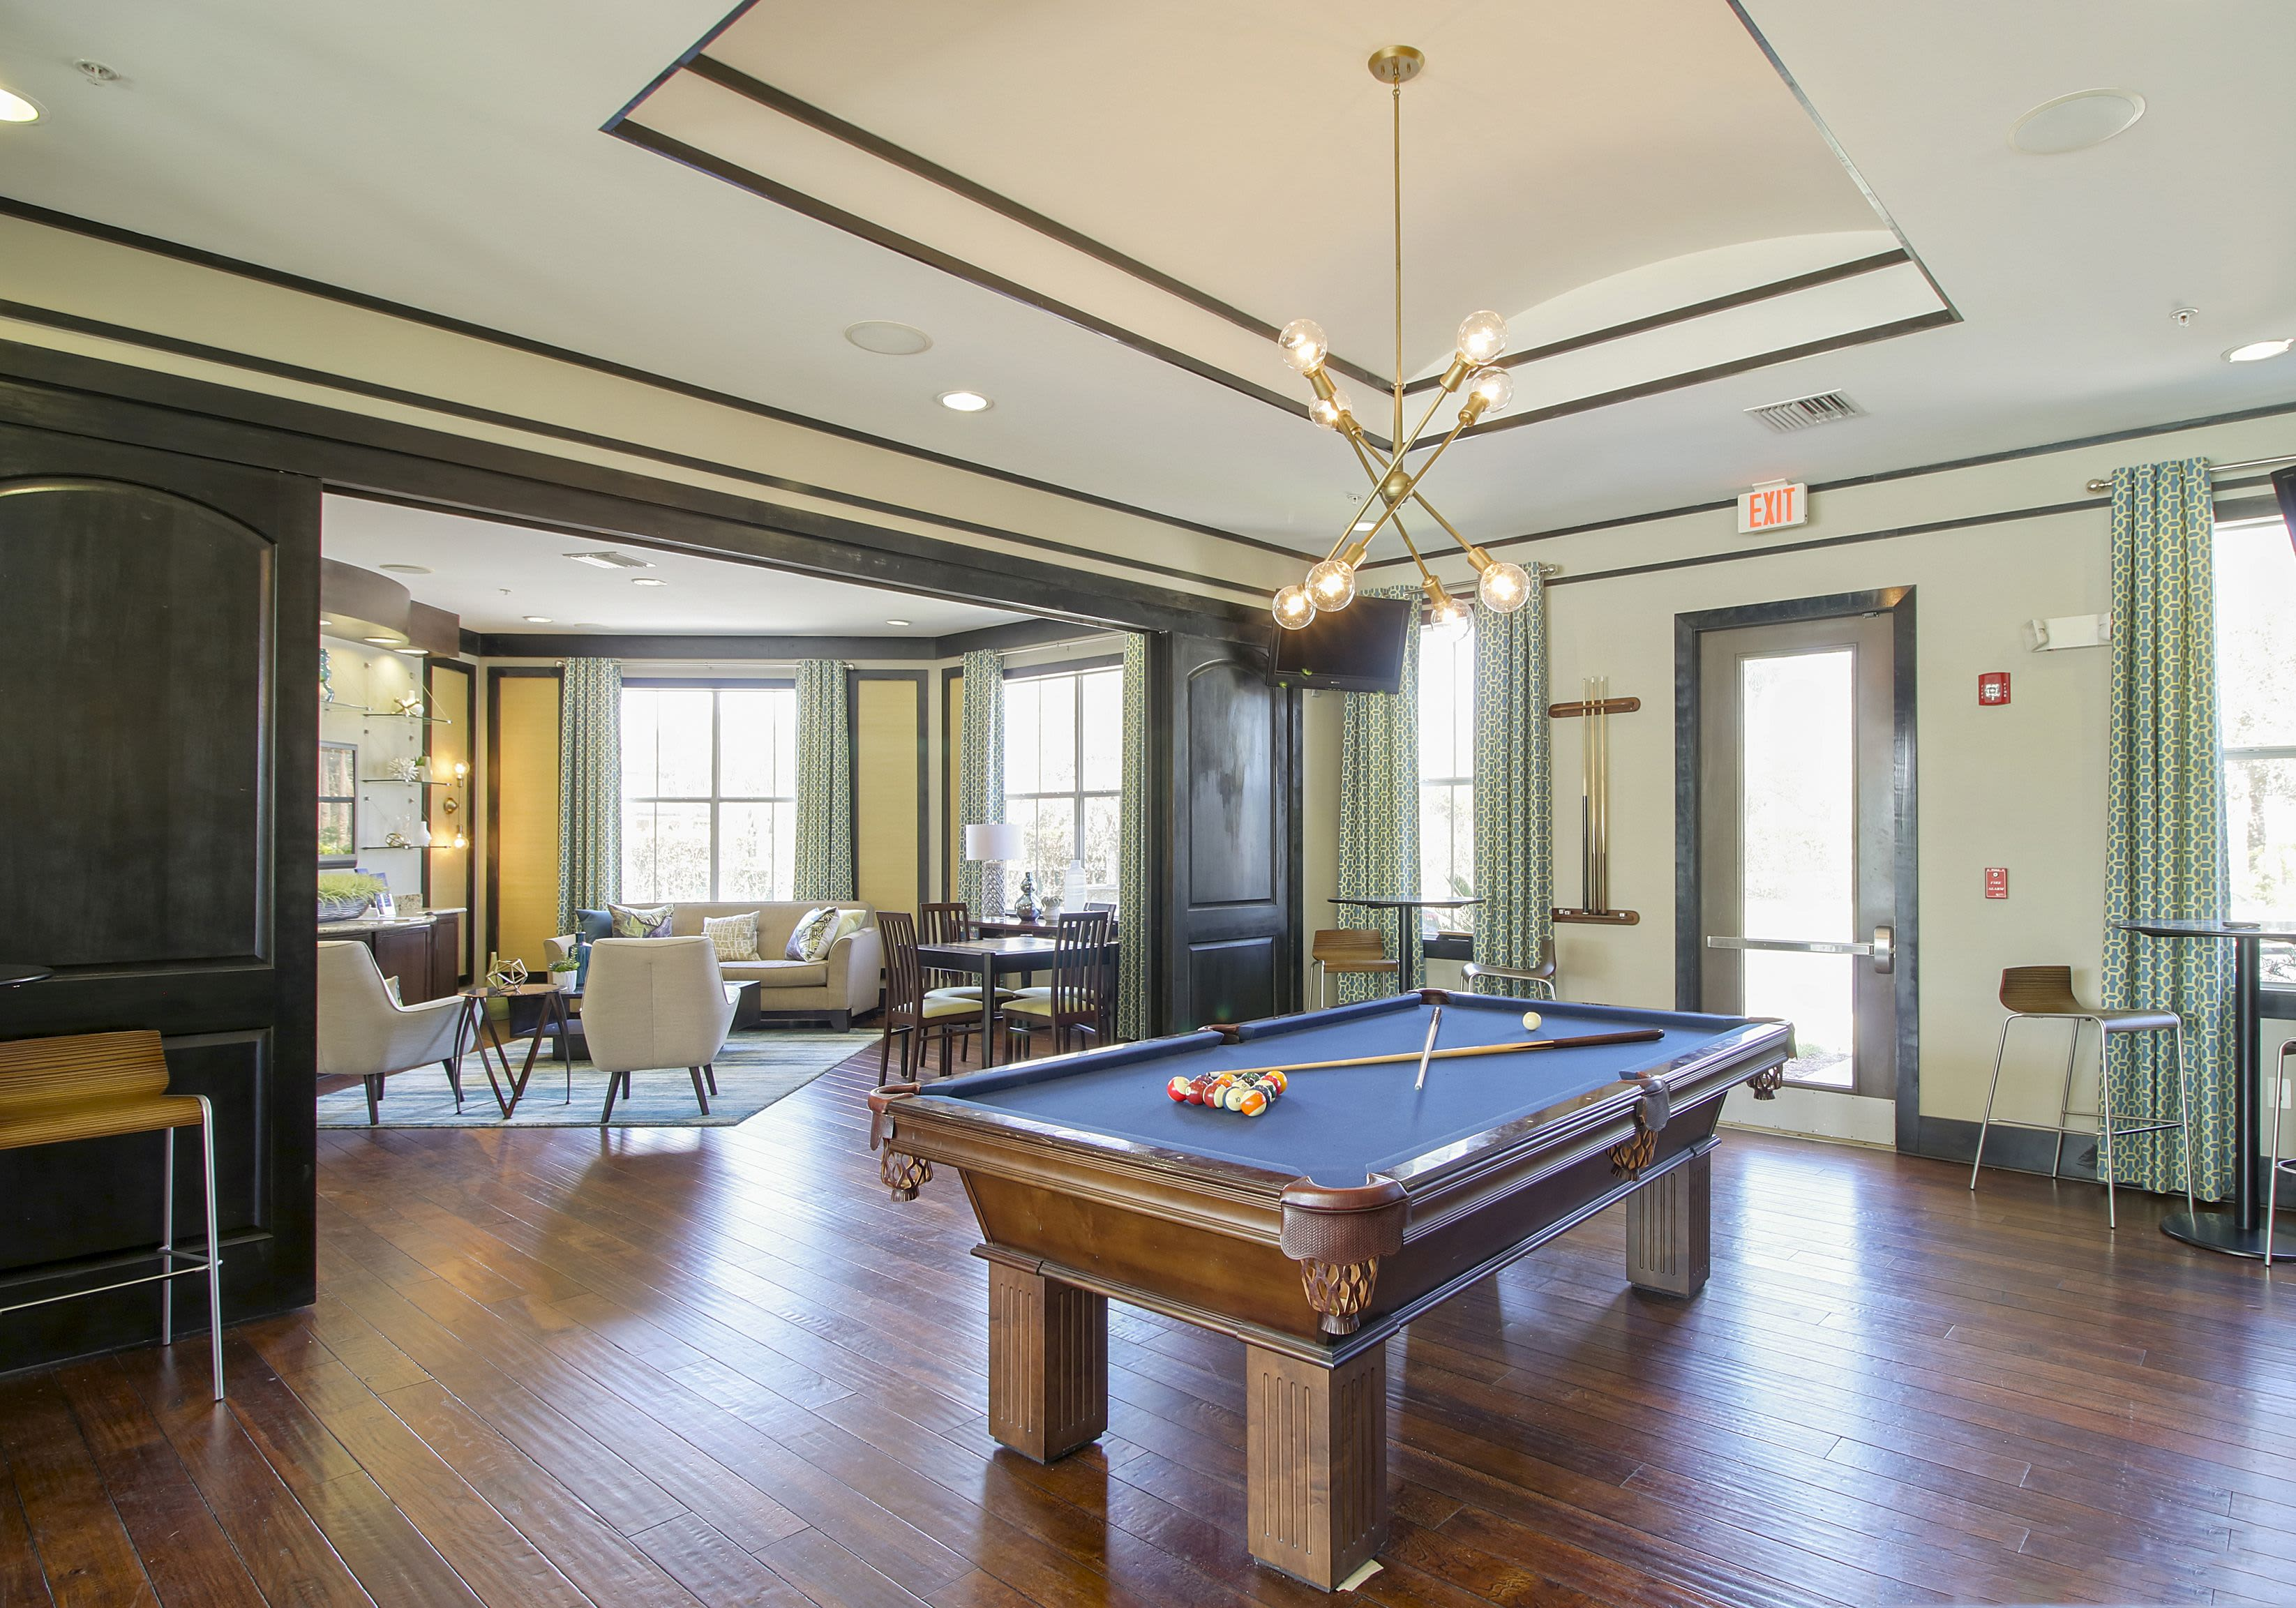 Pool Table at Highlands Viera West in Melbourne, Florida